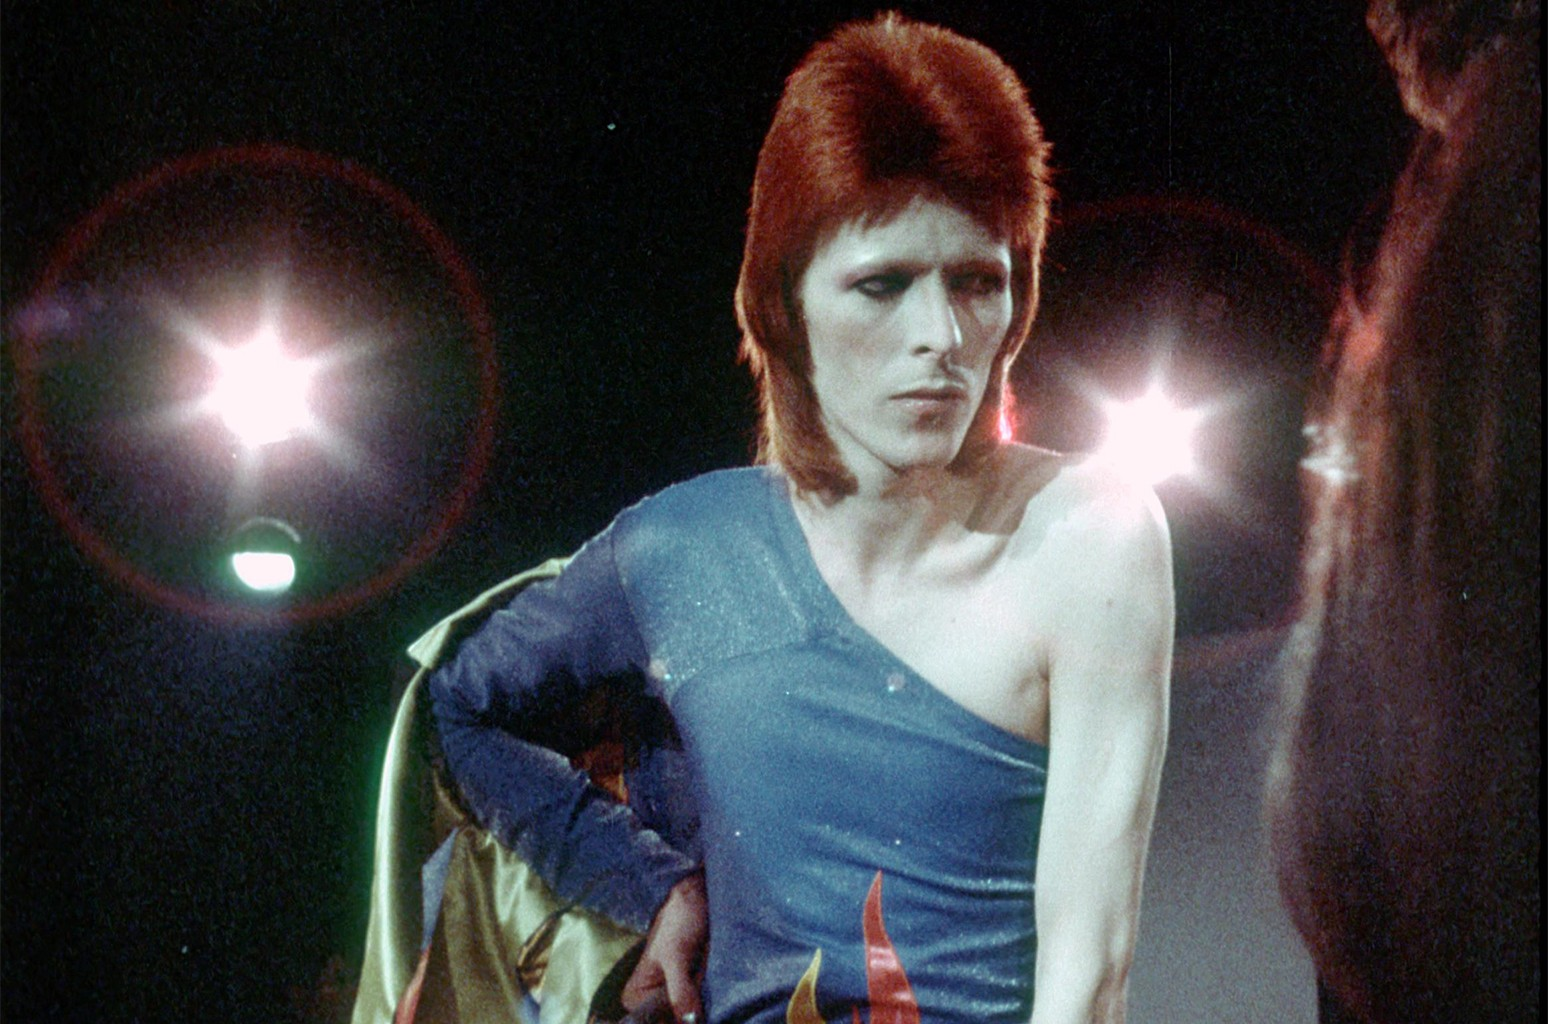 """David Bowie performs onstage during his """"Ziggy Stardust"""" era in 1973."""